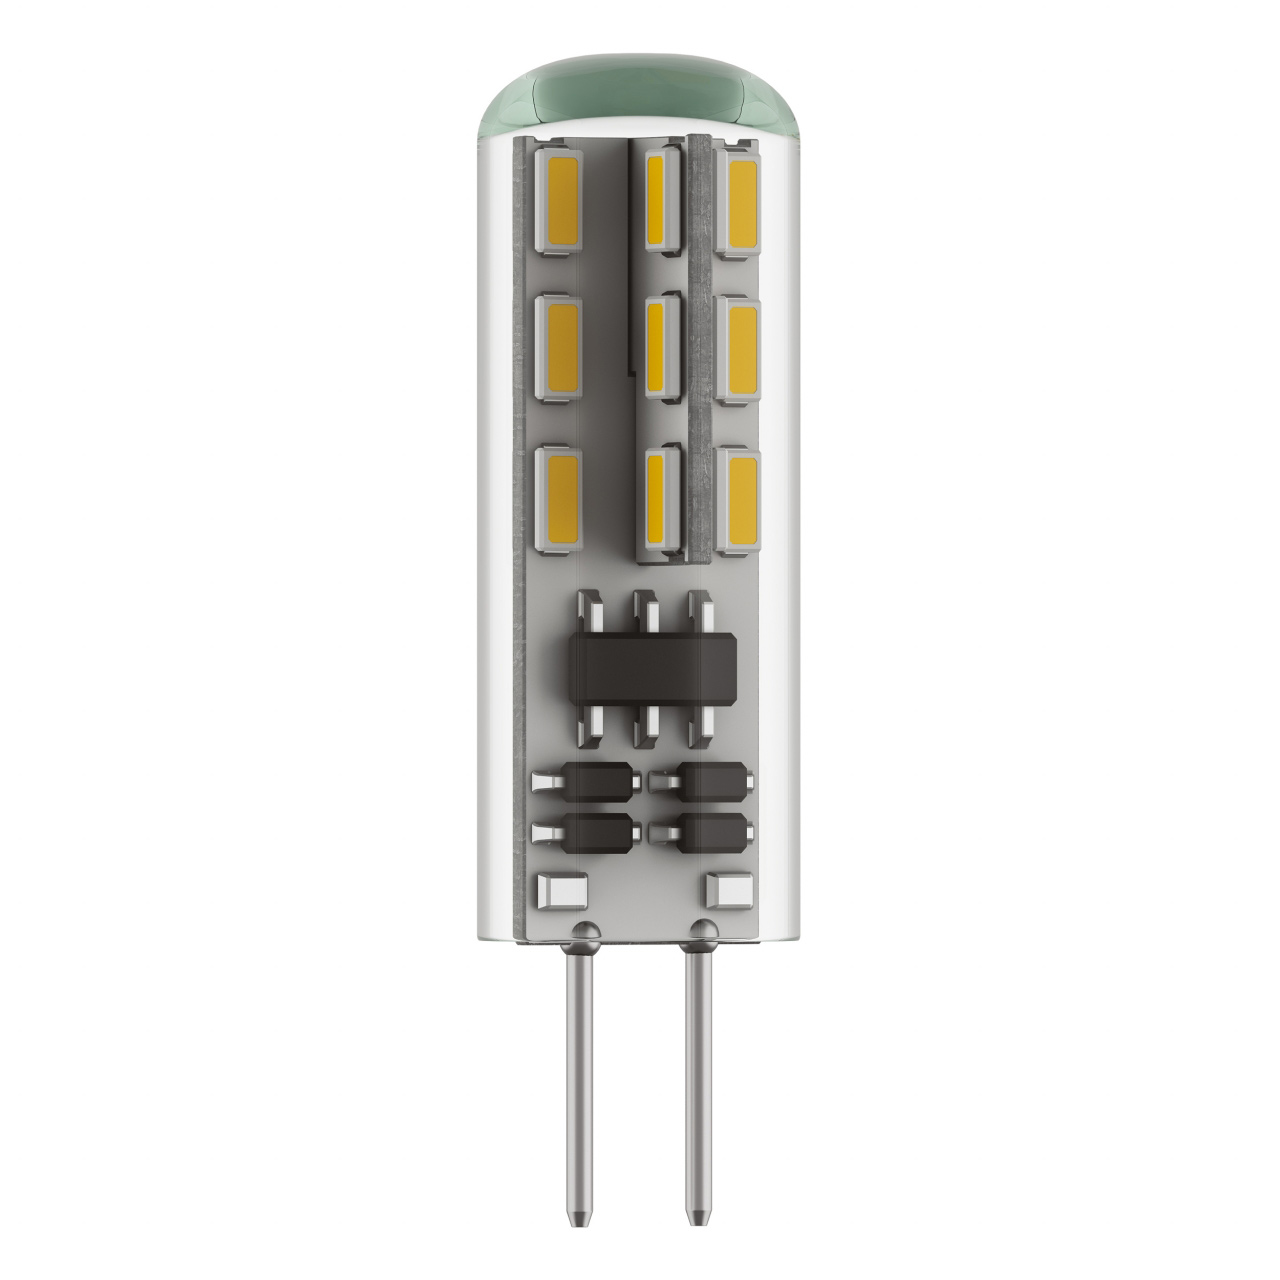 Лампа LED 12V JC G4 1.5W=15W 110LM 360G RA85 4000K 20000H Lightstar 932504